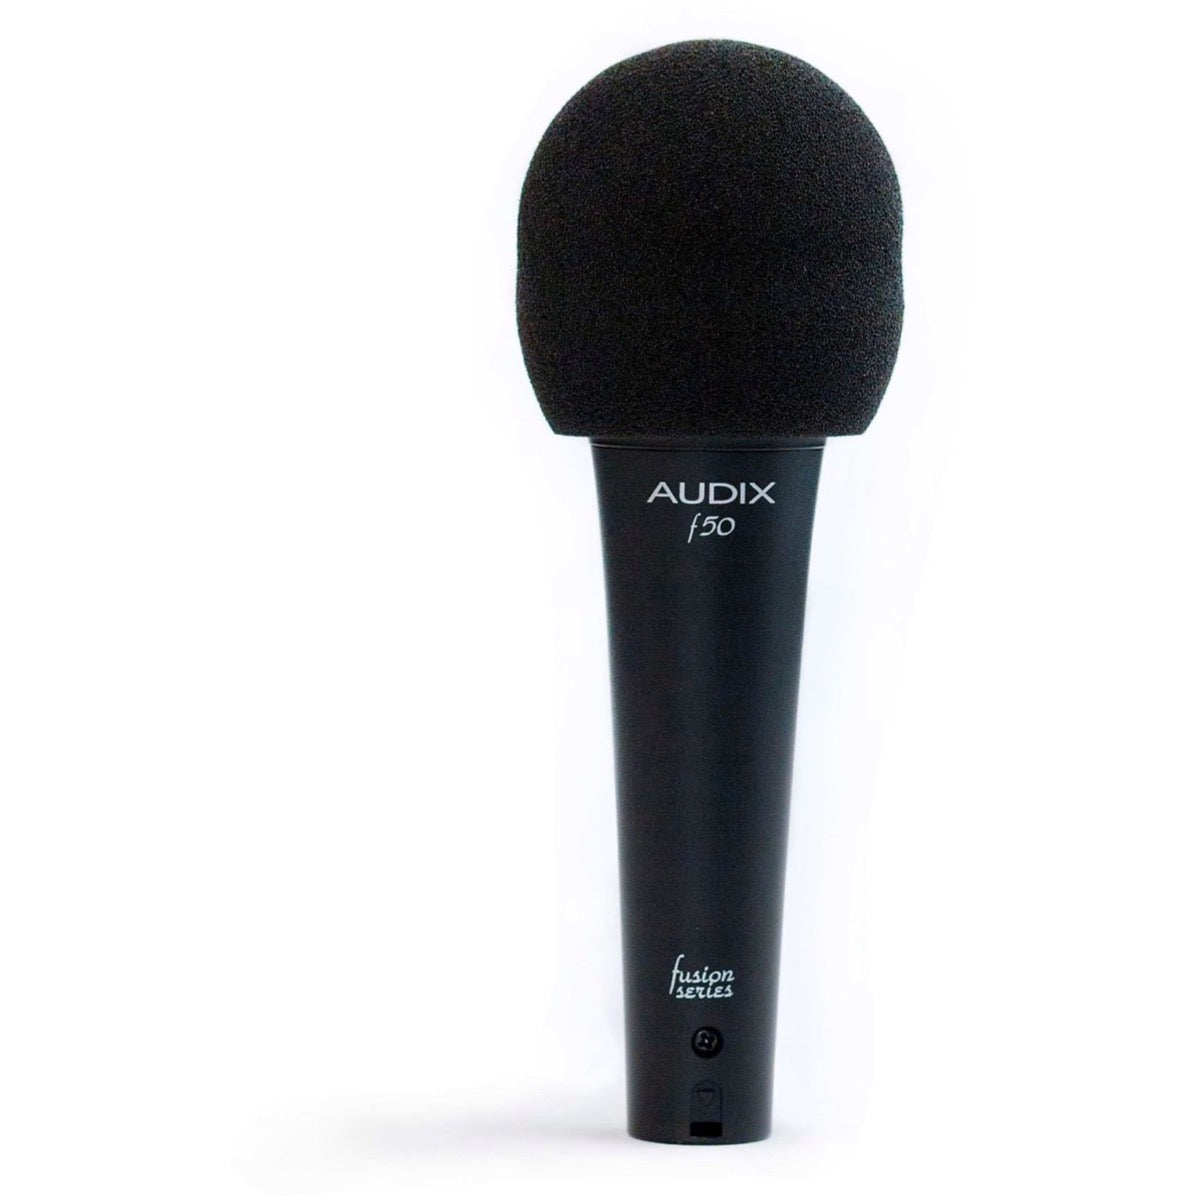 Audix F50 Dynamic Handheld Vocal Microphone